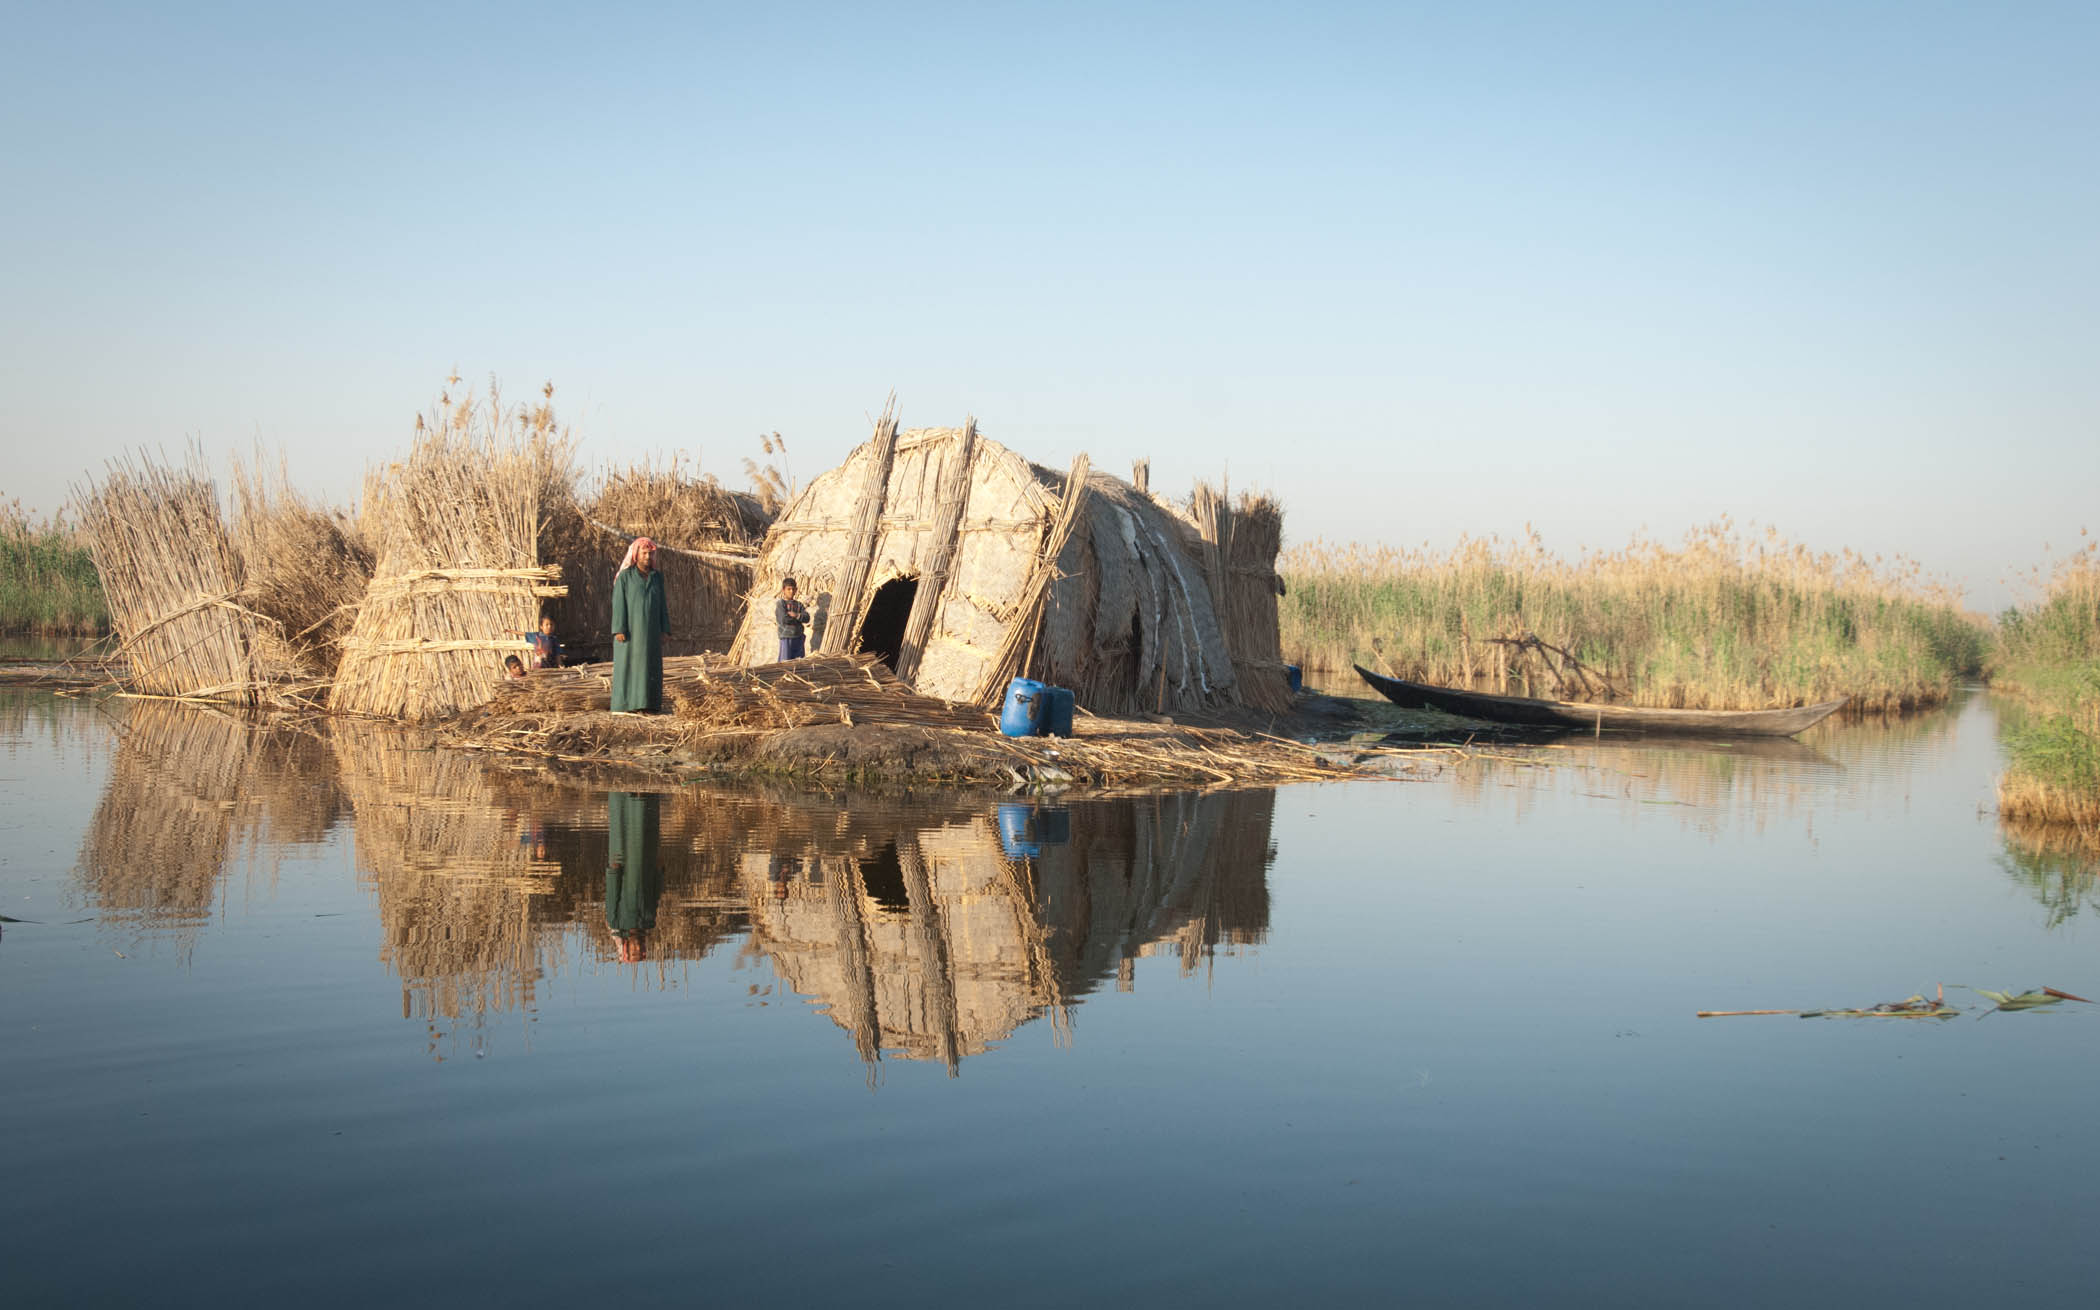 A House Built Of Reeds In The Arab Marshes Of South Eastern Iraq